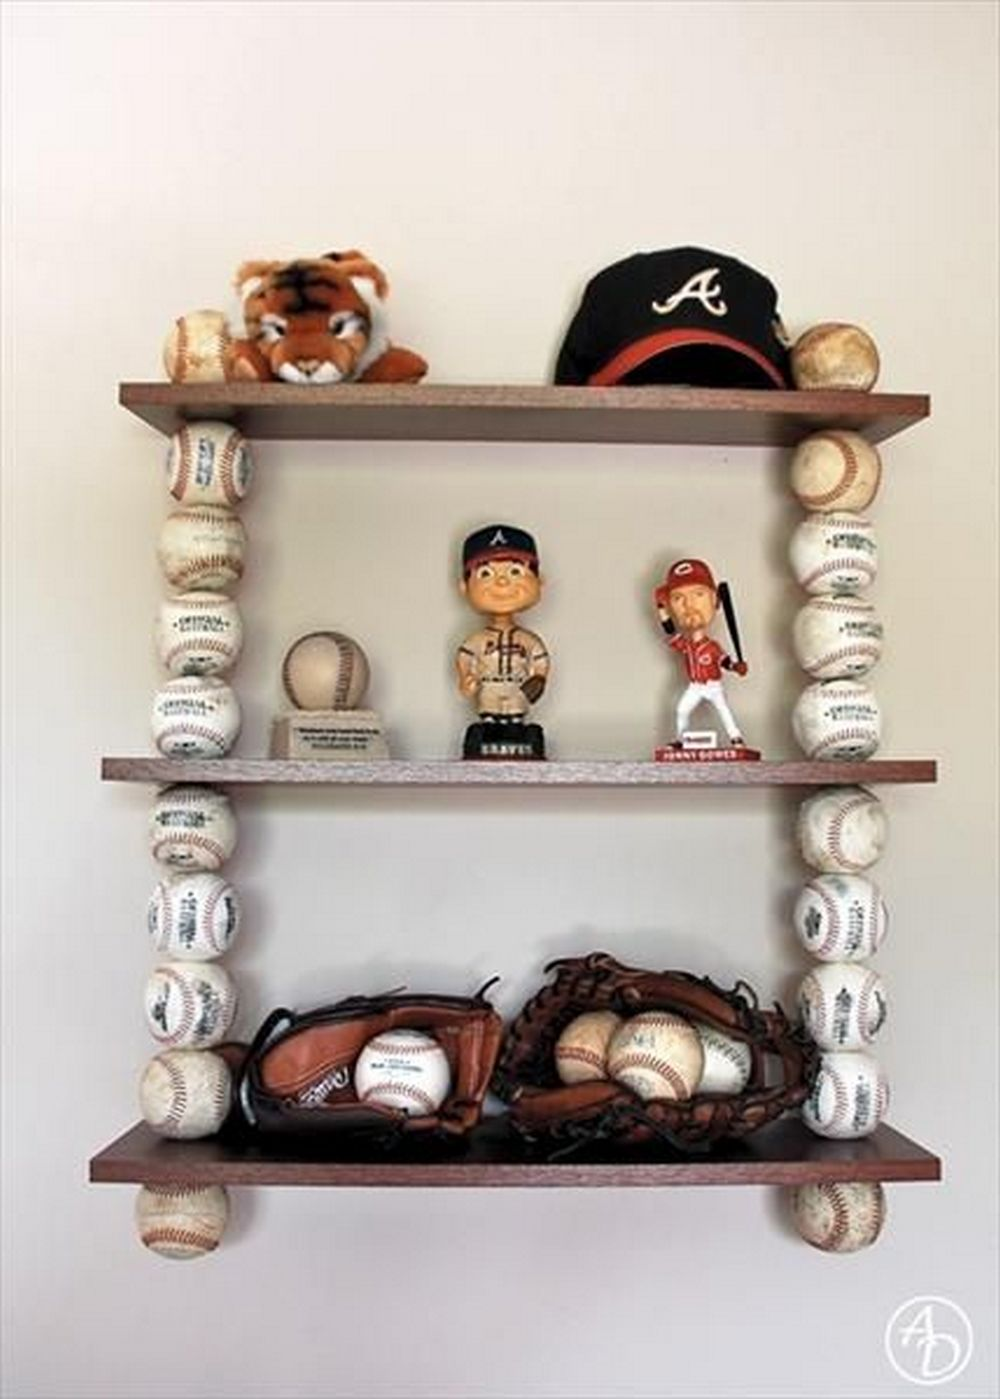 How to Build a Shelf From Baseball